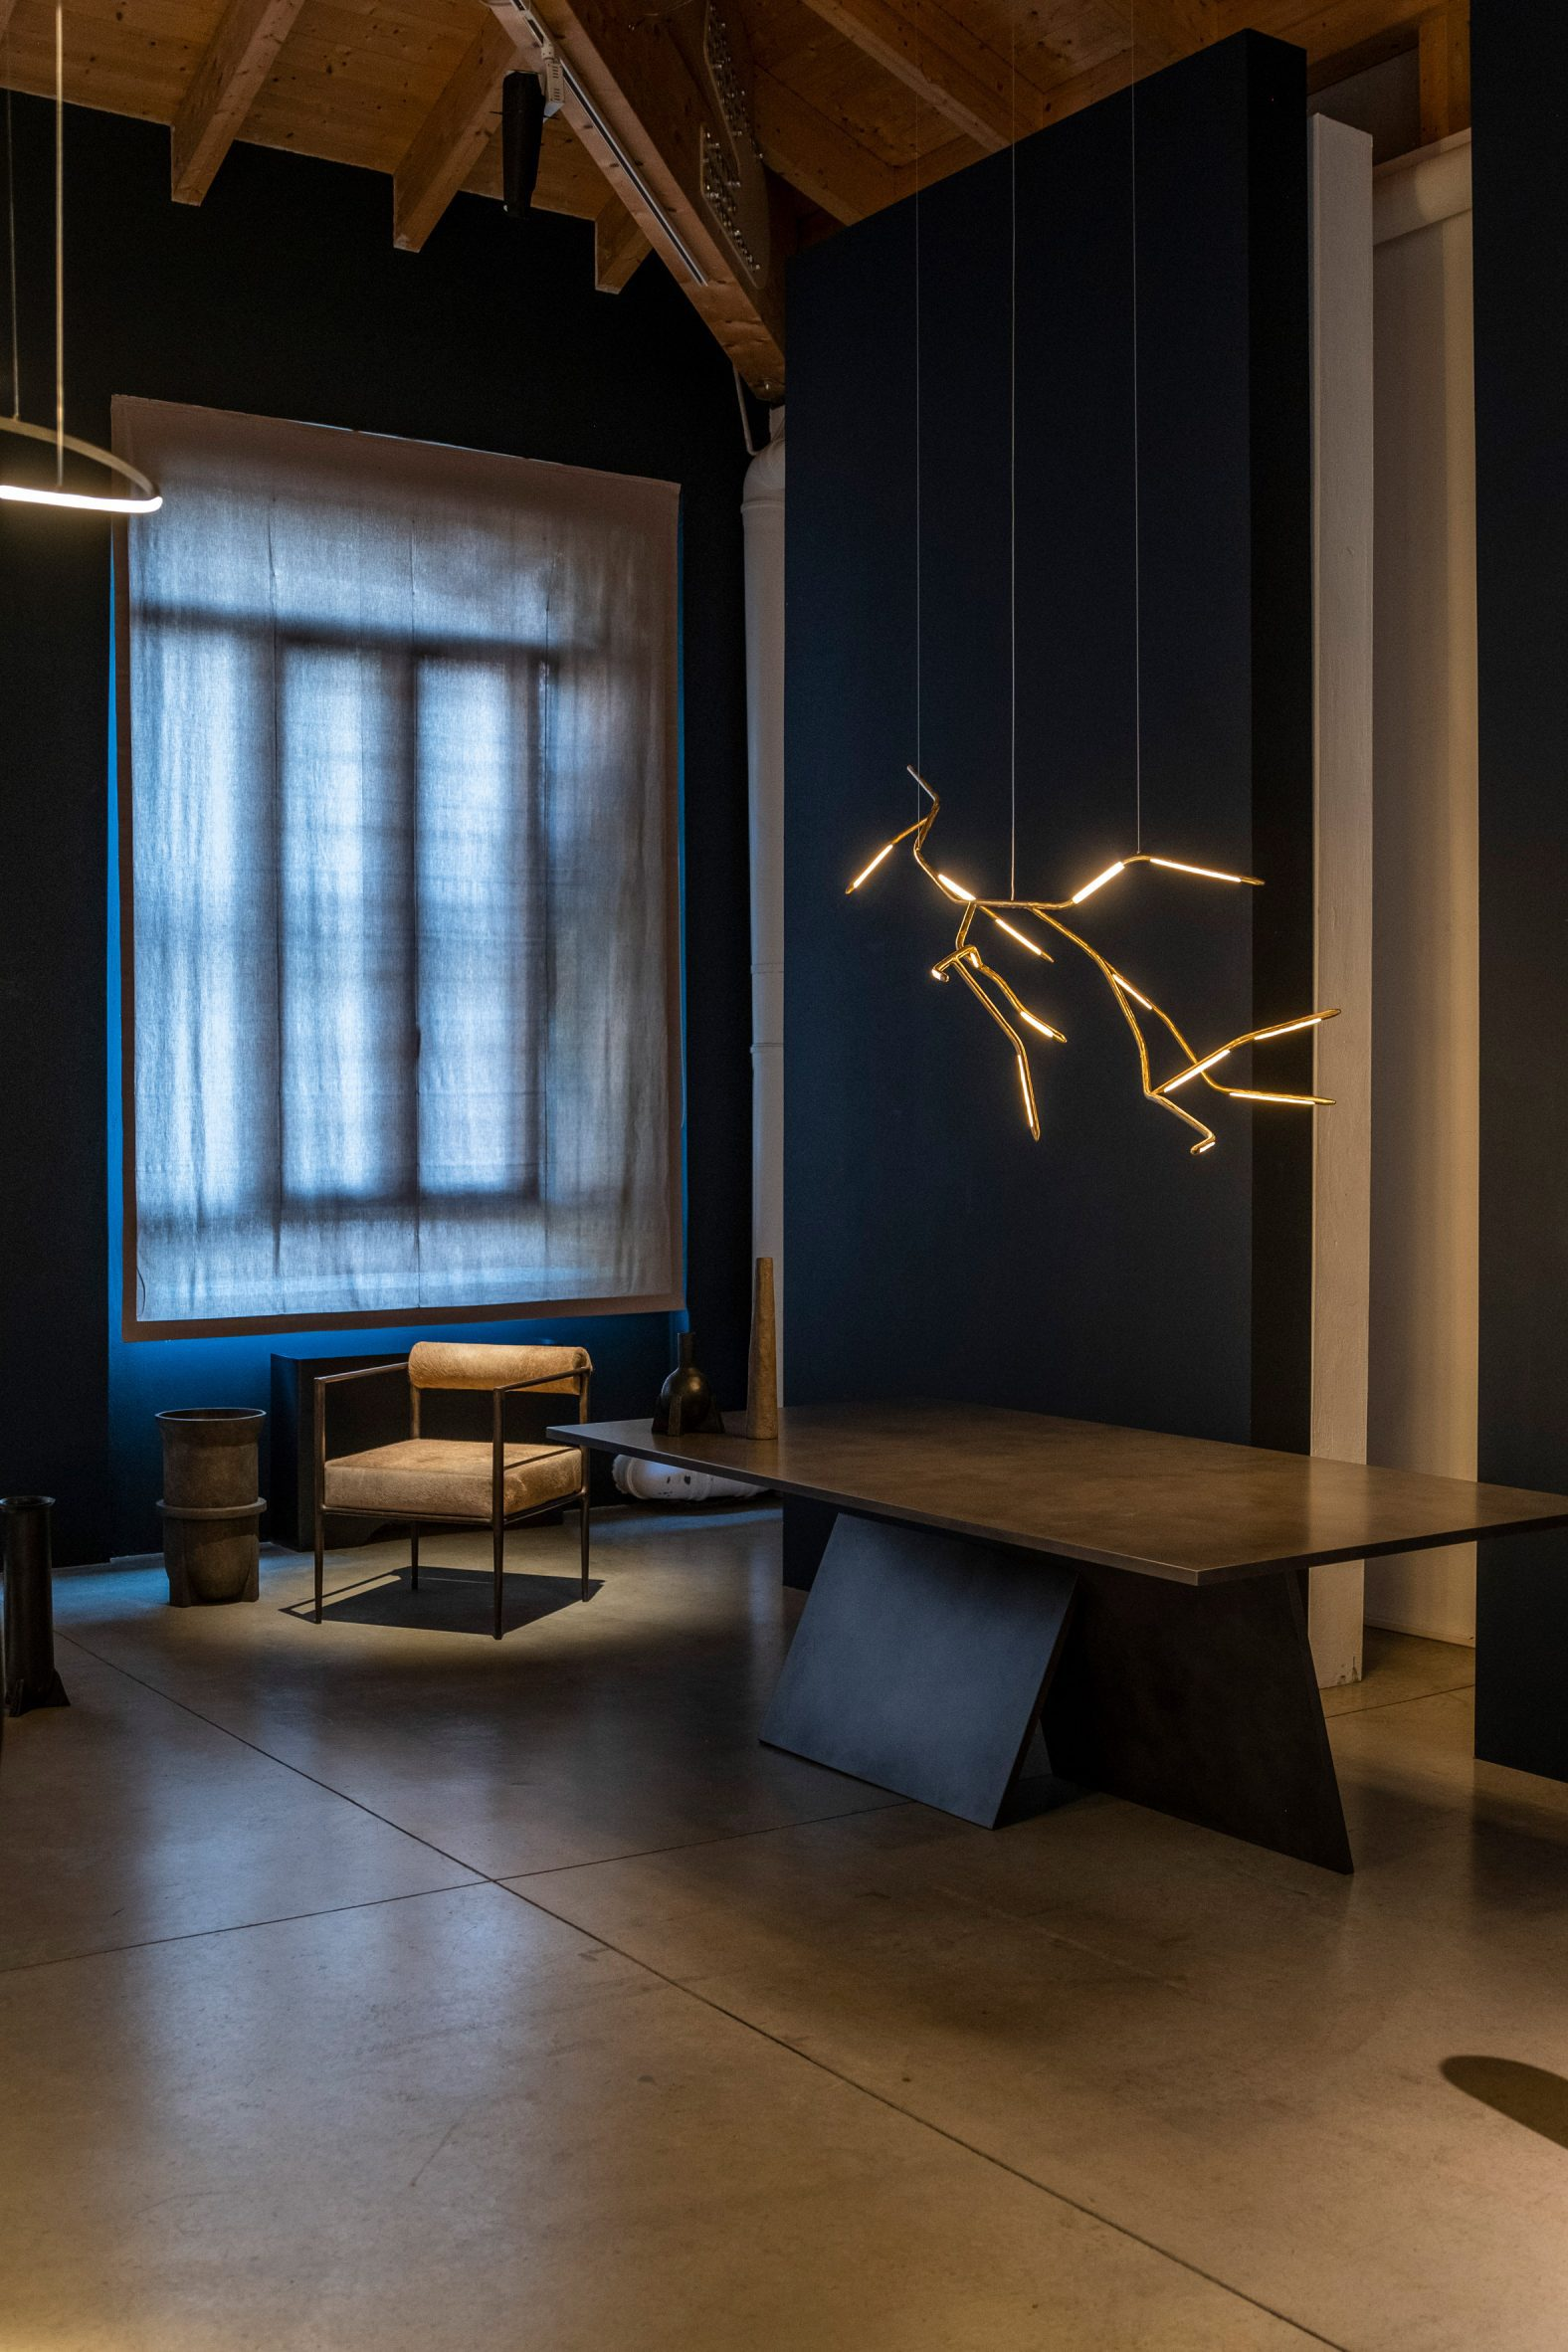 Dafne chandelier by Morghen and Rick Owens Square Alchemy chair at Galerie Philia exhibition